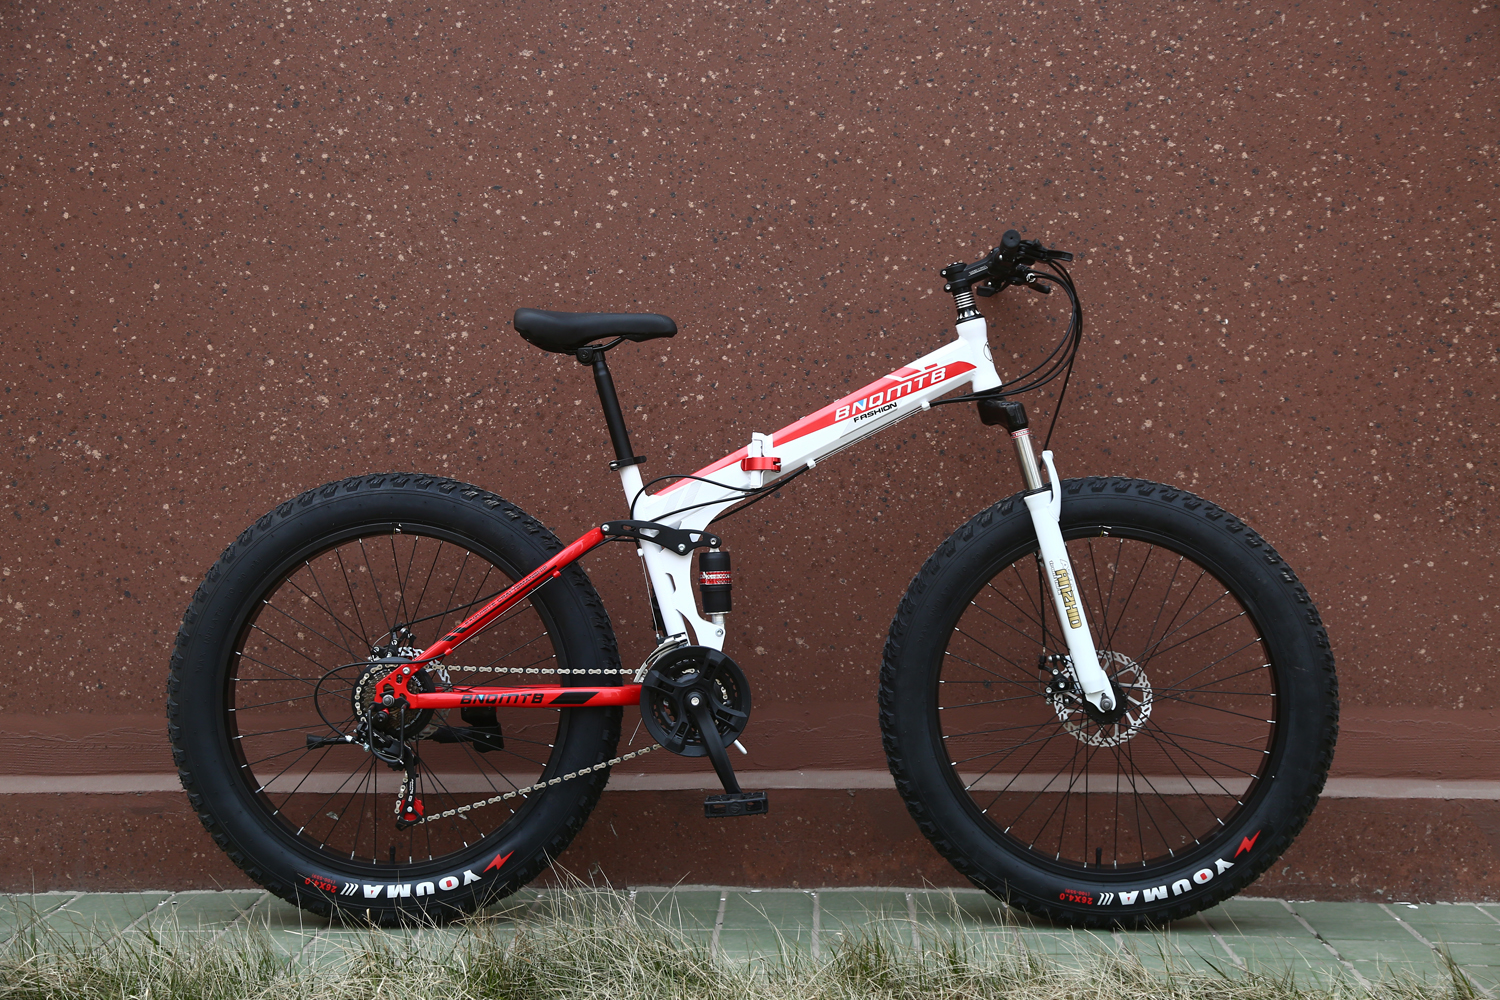 Fat Bike For Sale >> Hot Sale Fashion Design Snow Bicycle Mountain Bike Fat Bike With Loading For Cycling Made In China Buy Used Fat Tire Bikes For Sale Snow Bike Child